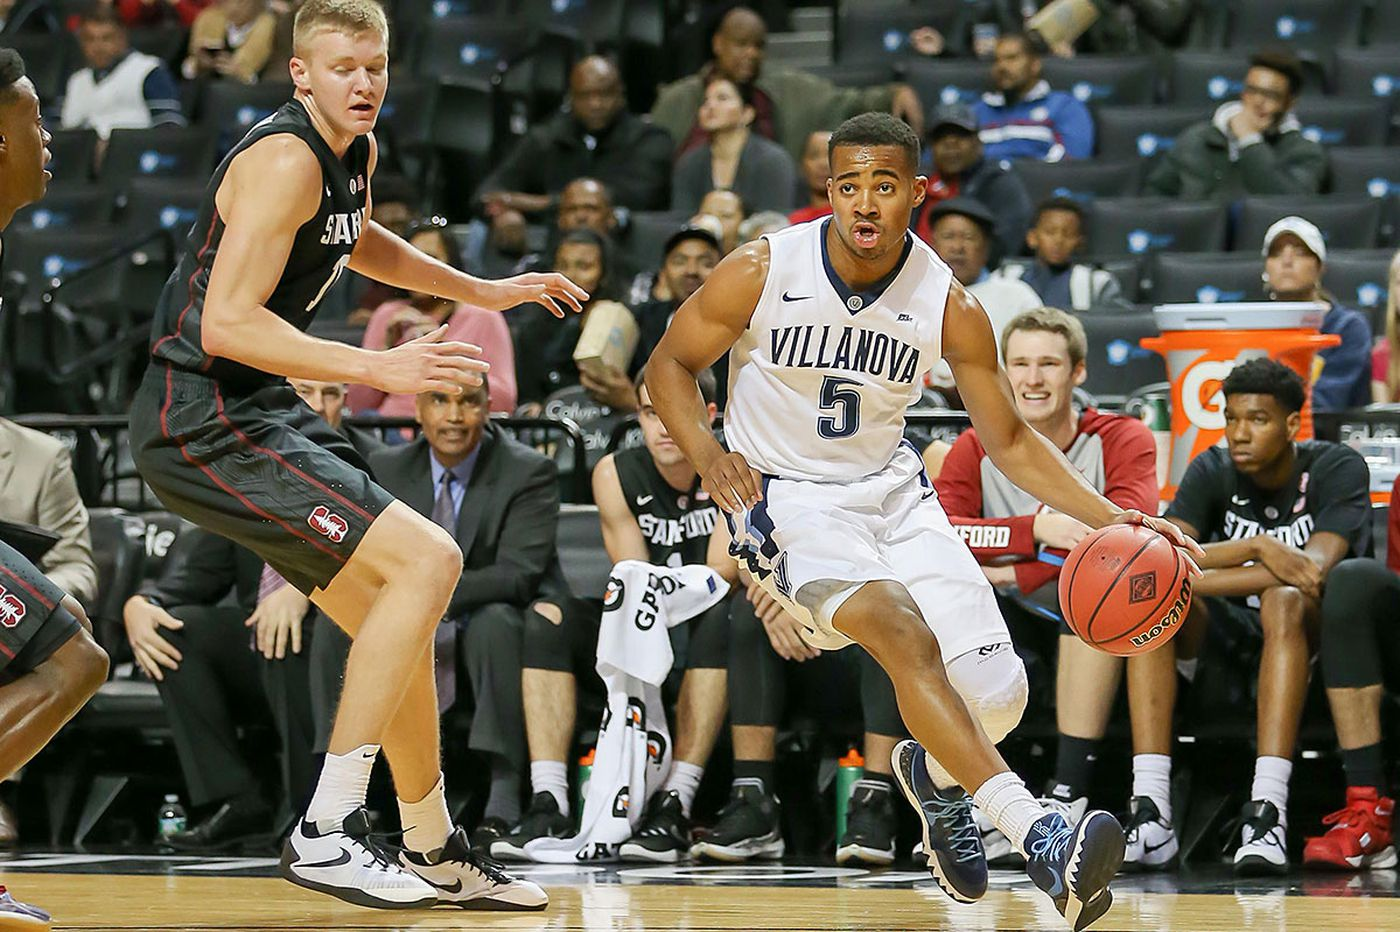 No. 8 Villanova beats Stanford, improves to 5-0